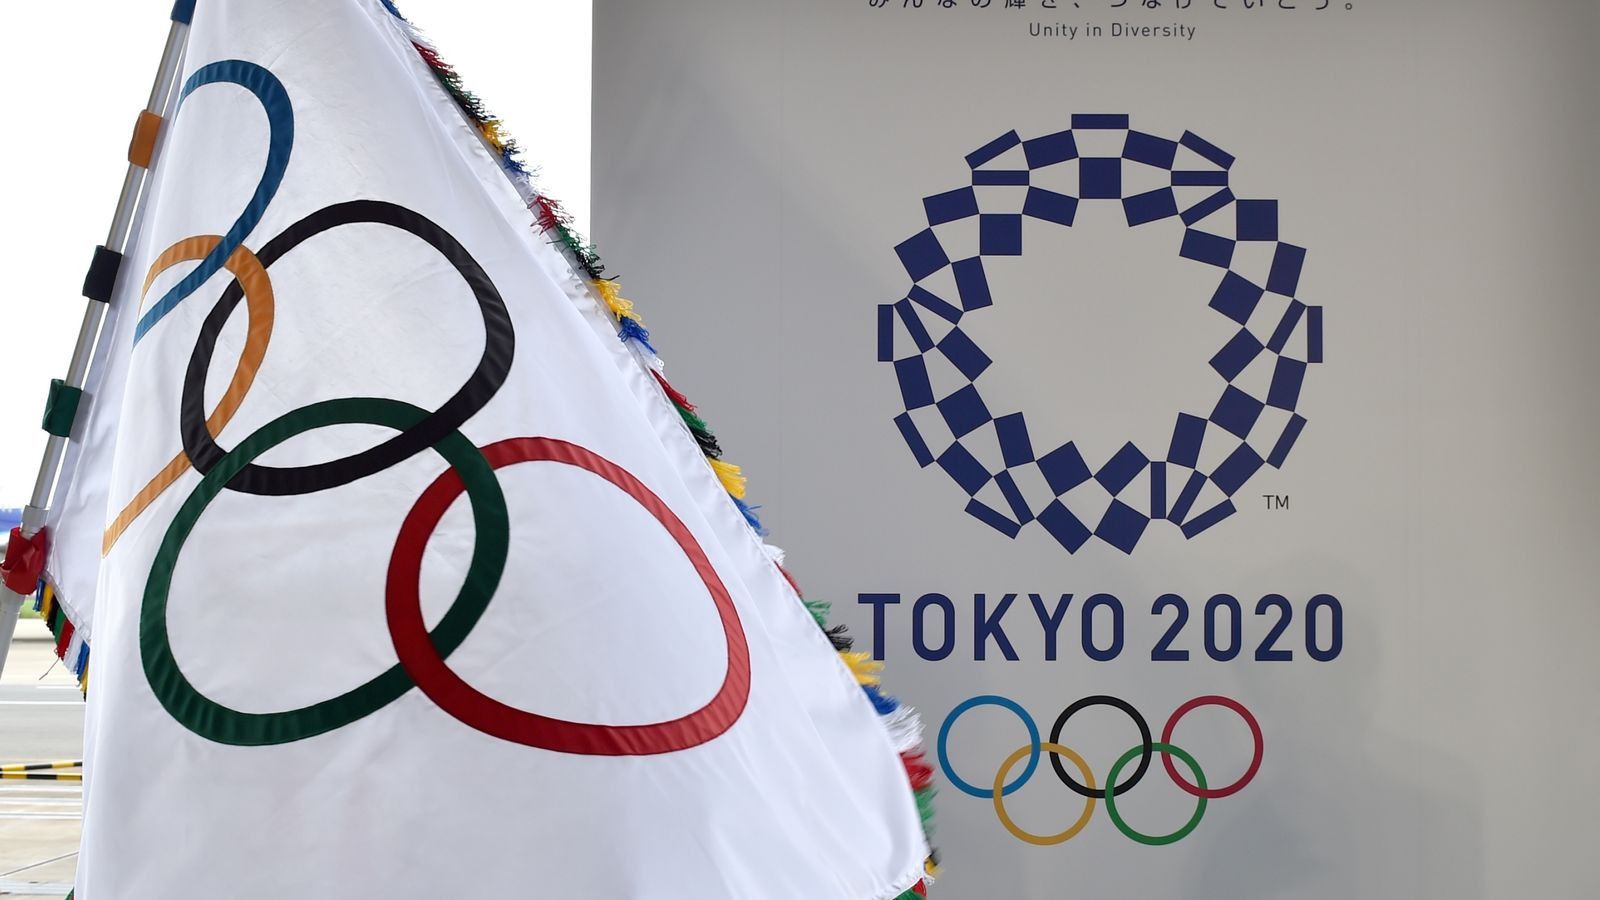 Tokyo 2020 is still relying on sponsor renewals for 2021 ©Getty Images